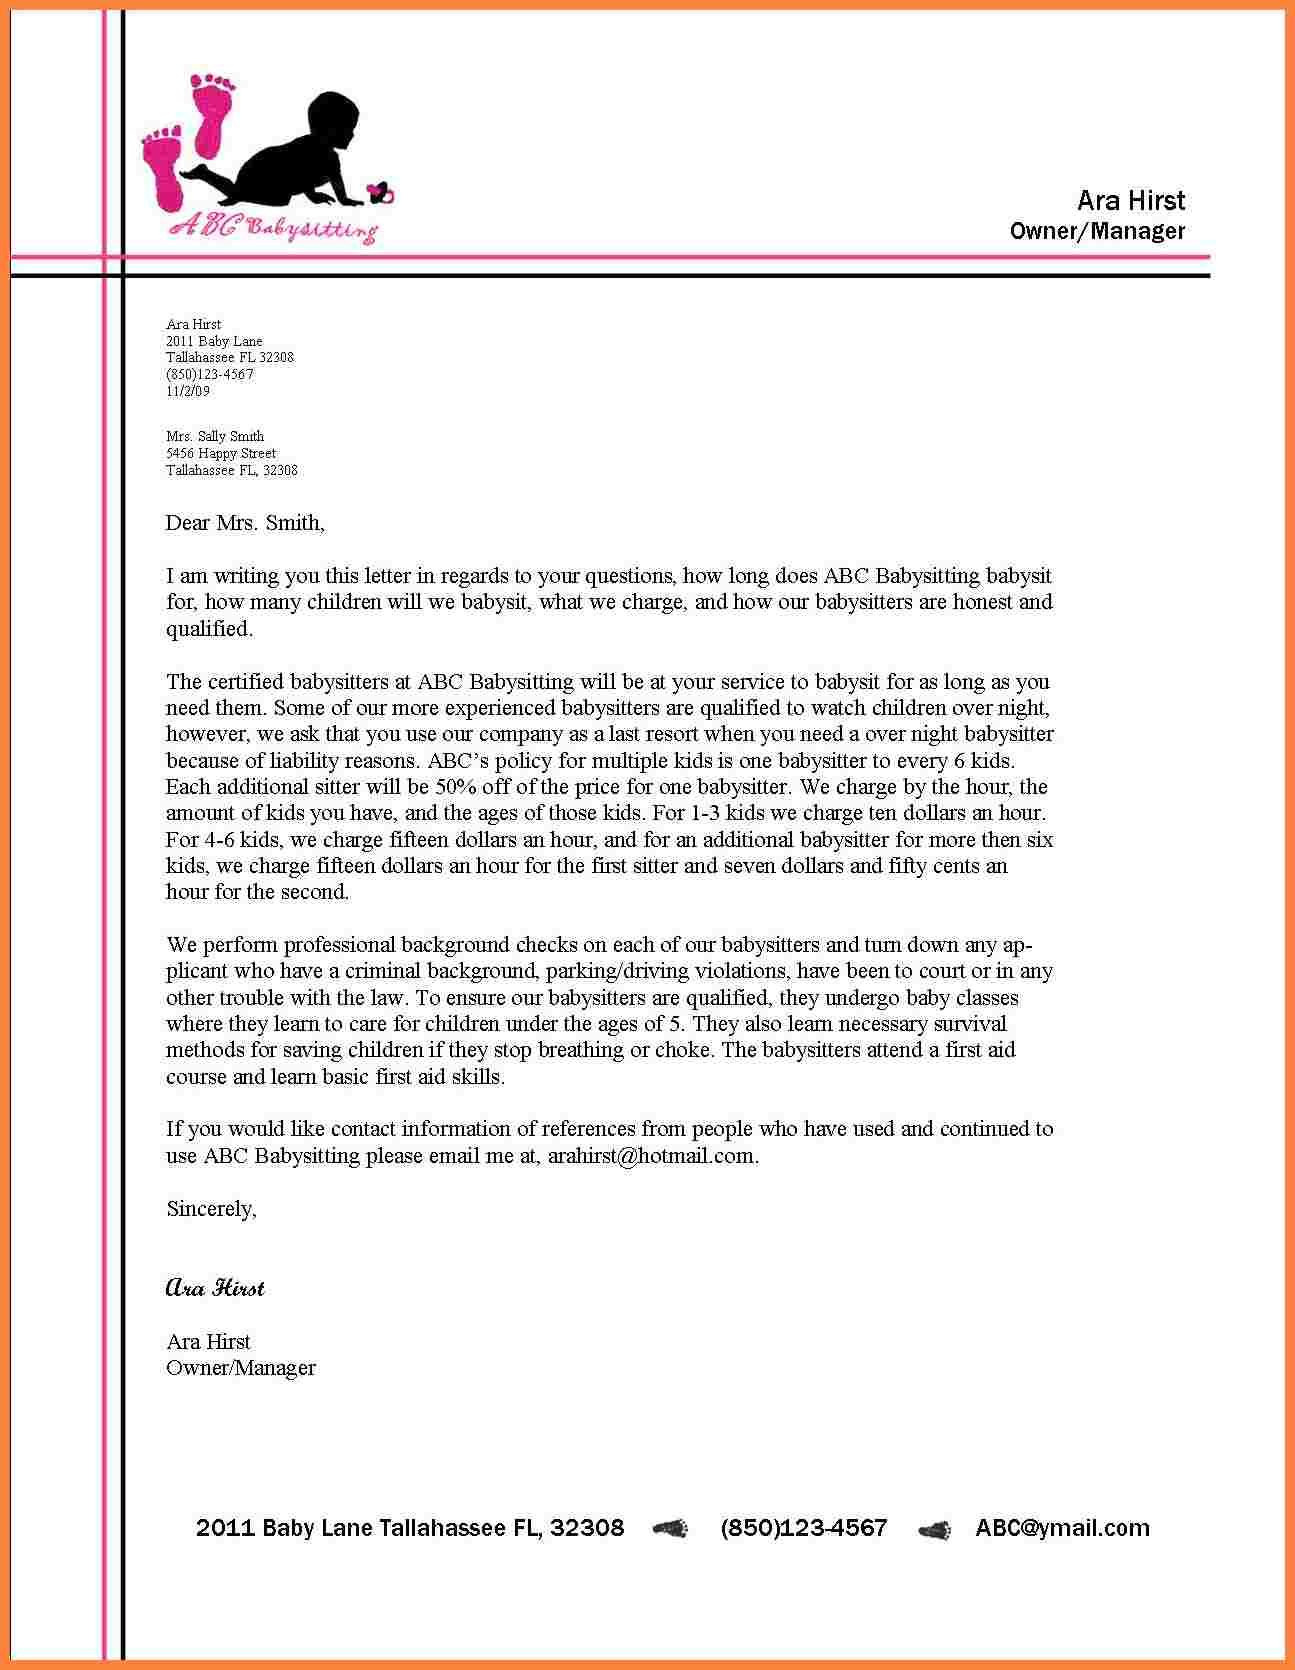 For Business Letter Letterhead With Modified Style Format Example